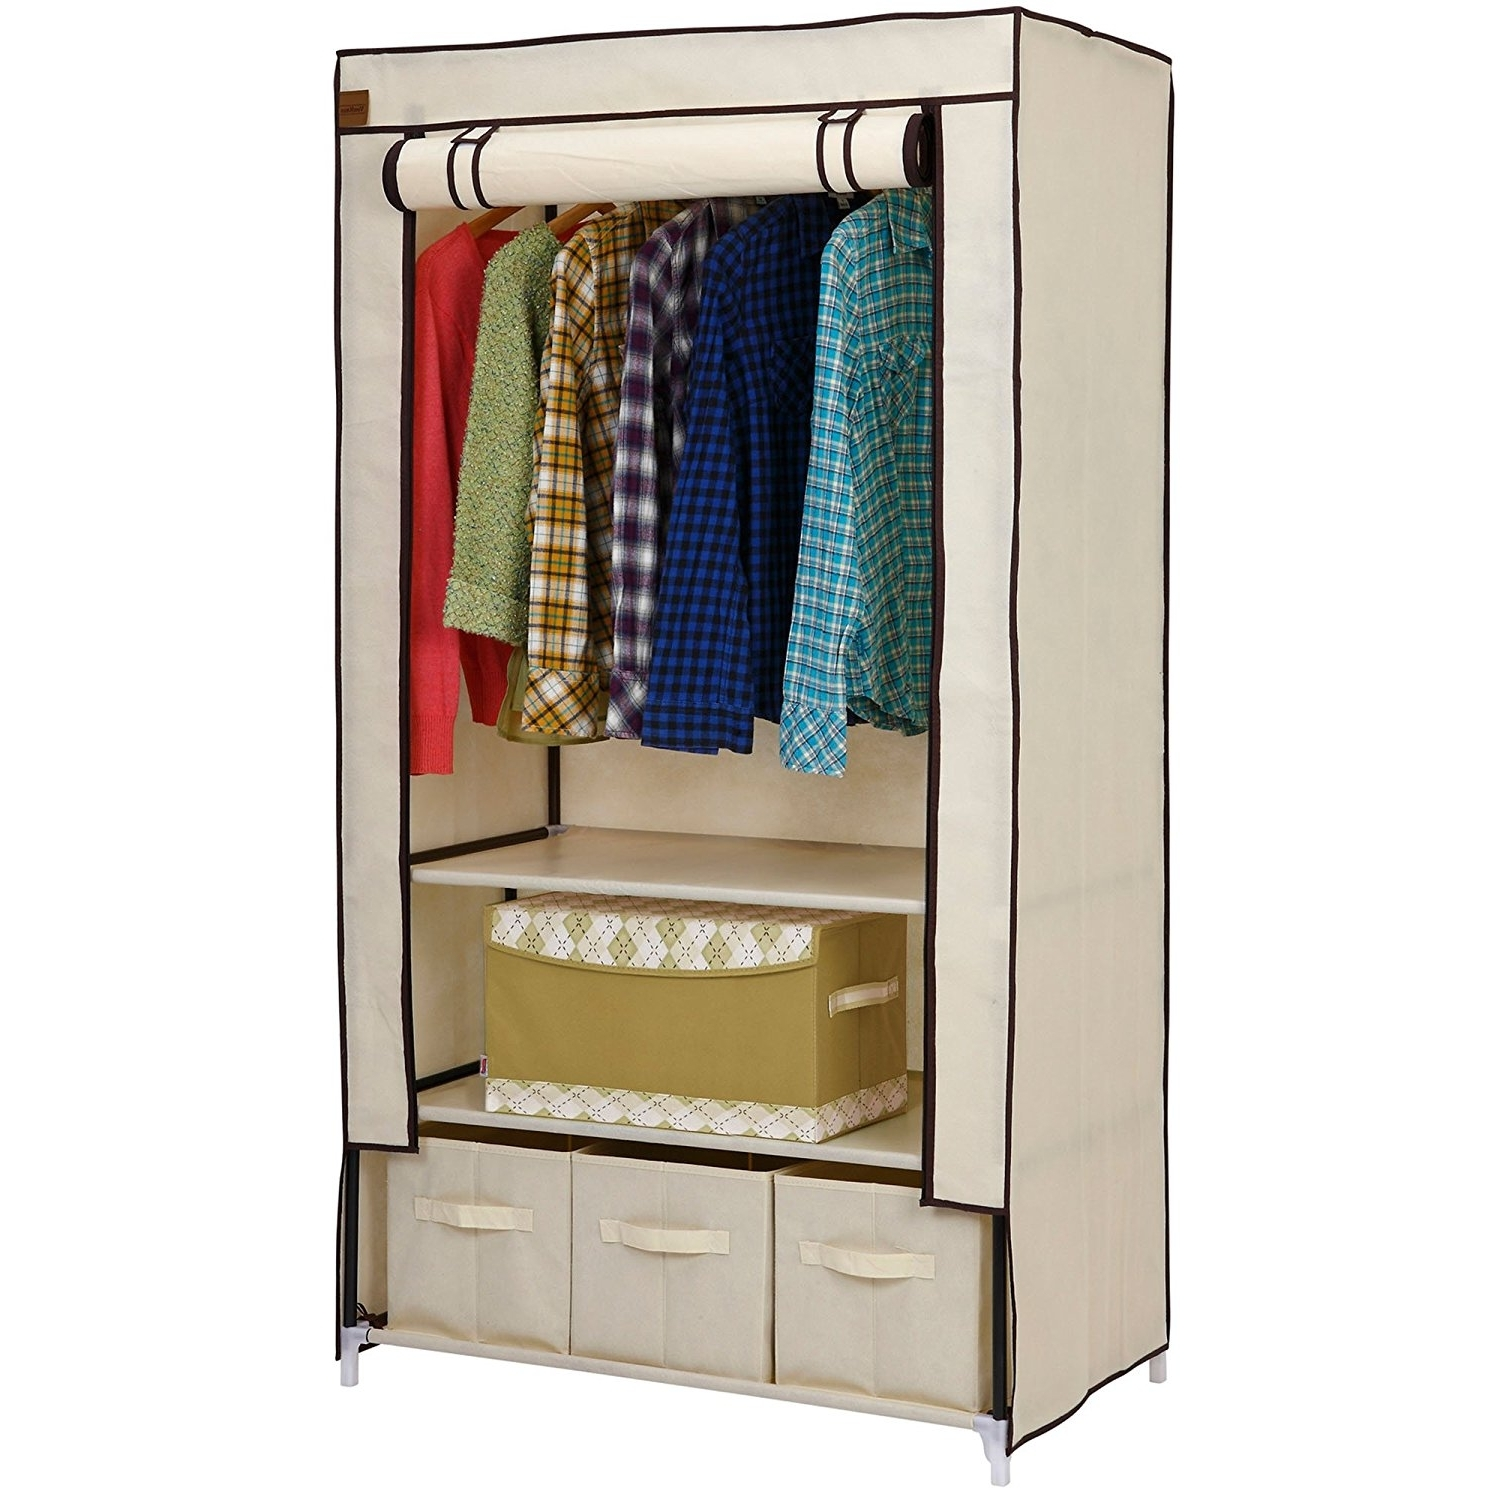 Most Recent Wardrobe Double Hanging Rail Pertaining To Vonhaus Double Canvas Effect Wardrobe – Clothes Storage Cupboard (View 15 of 15)